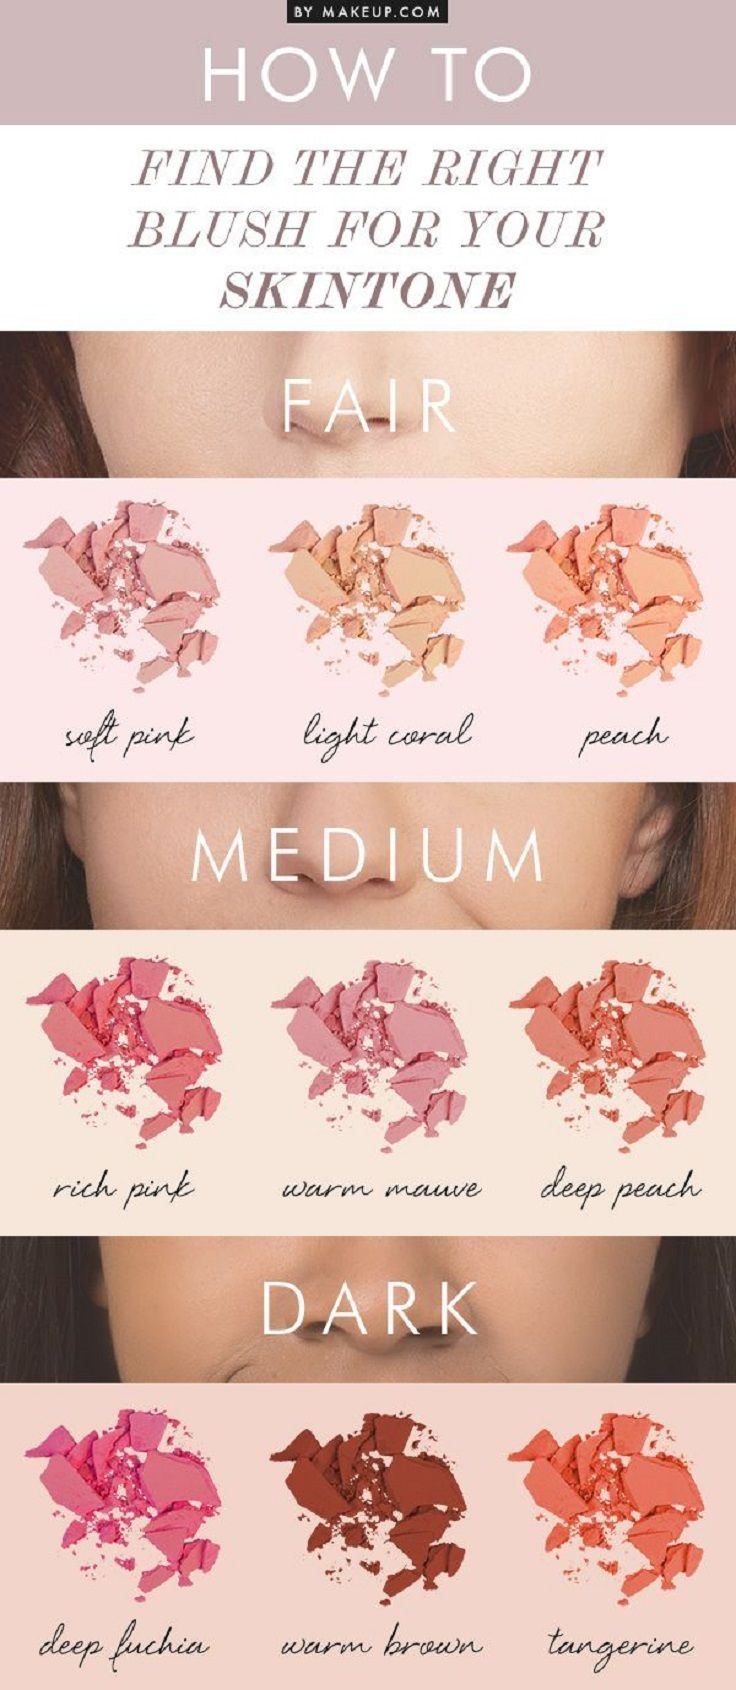 Blush toned blush is gorgeous and elegant. Feel beautiful and romantic in blush tones at Beauty.com.